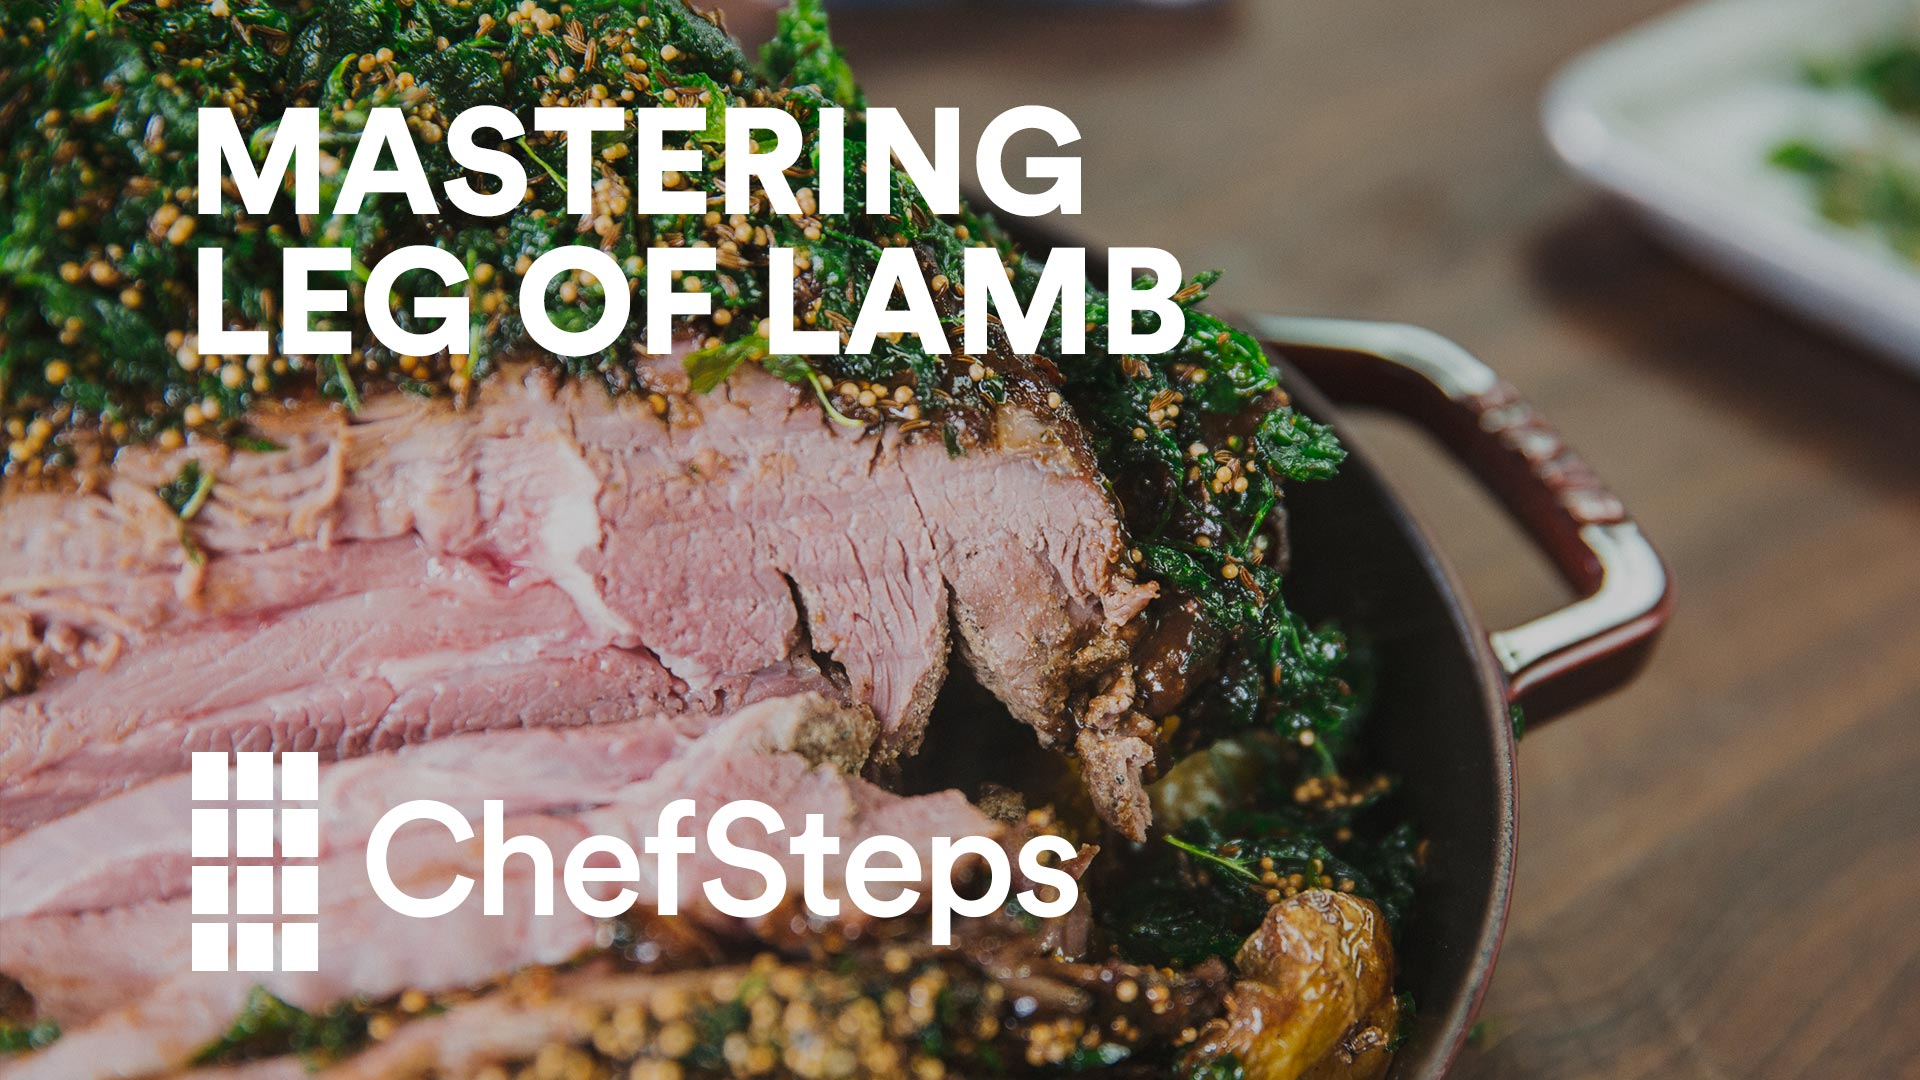 ChefSteps   Mastering Leg of Lamb: A Stress-Free Technique for a Stunning Feast